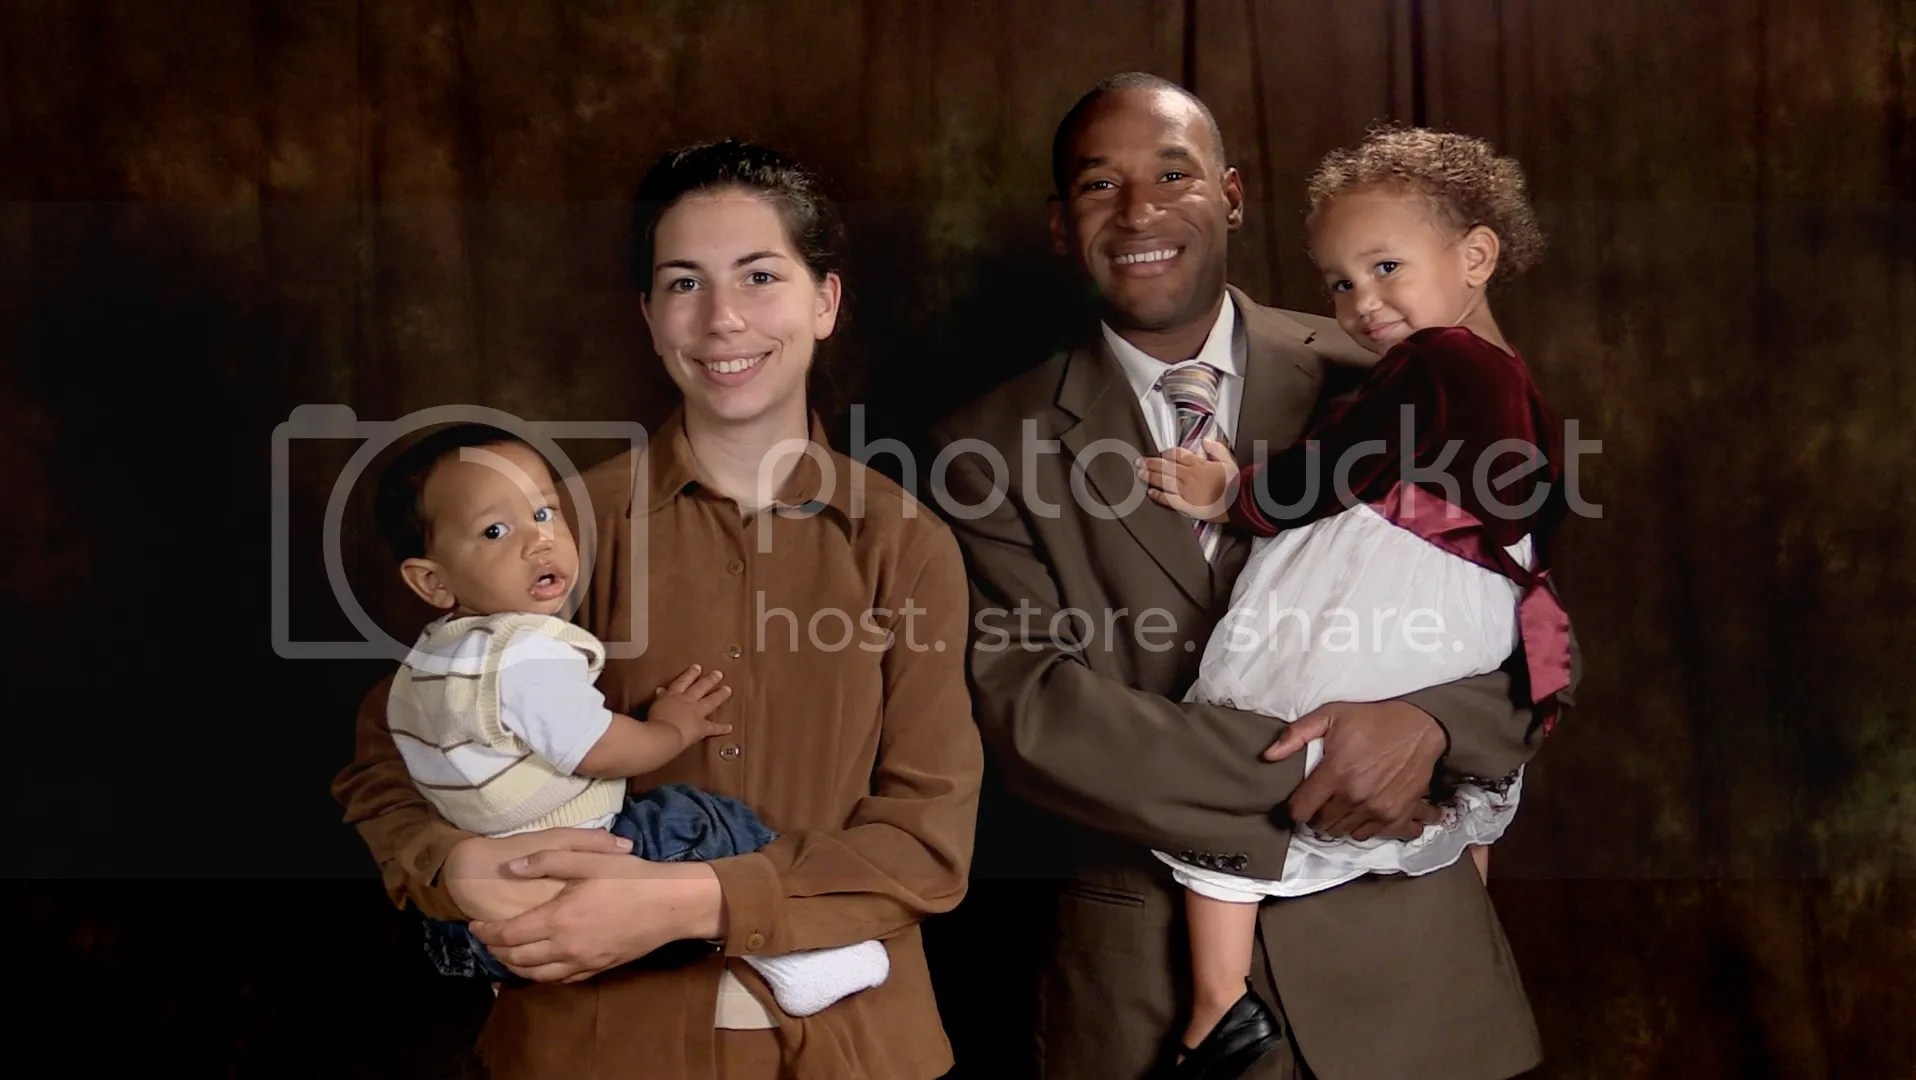 photo Ross Jackson Family 4_zpsijdndteq.jpg